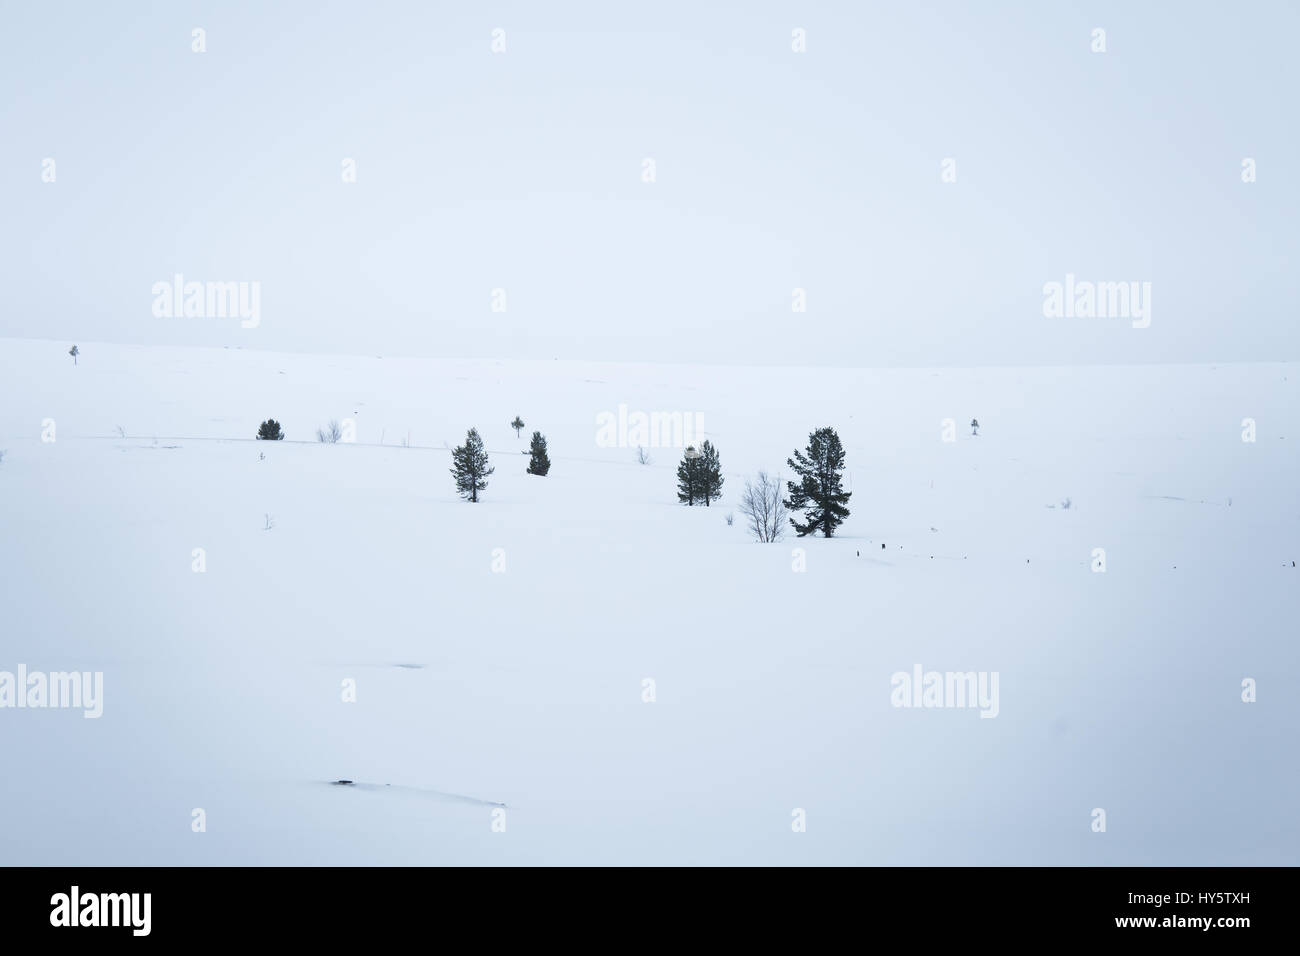 A beautiful, minimalist landscape of snowdrift in Norway. Clean, light, high key, decorative look. Stock Photo